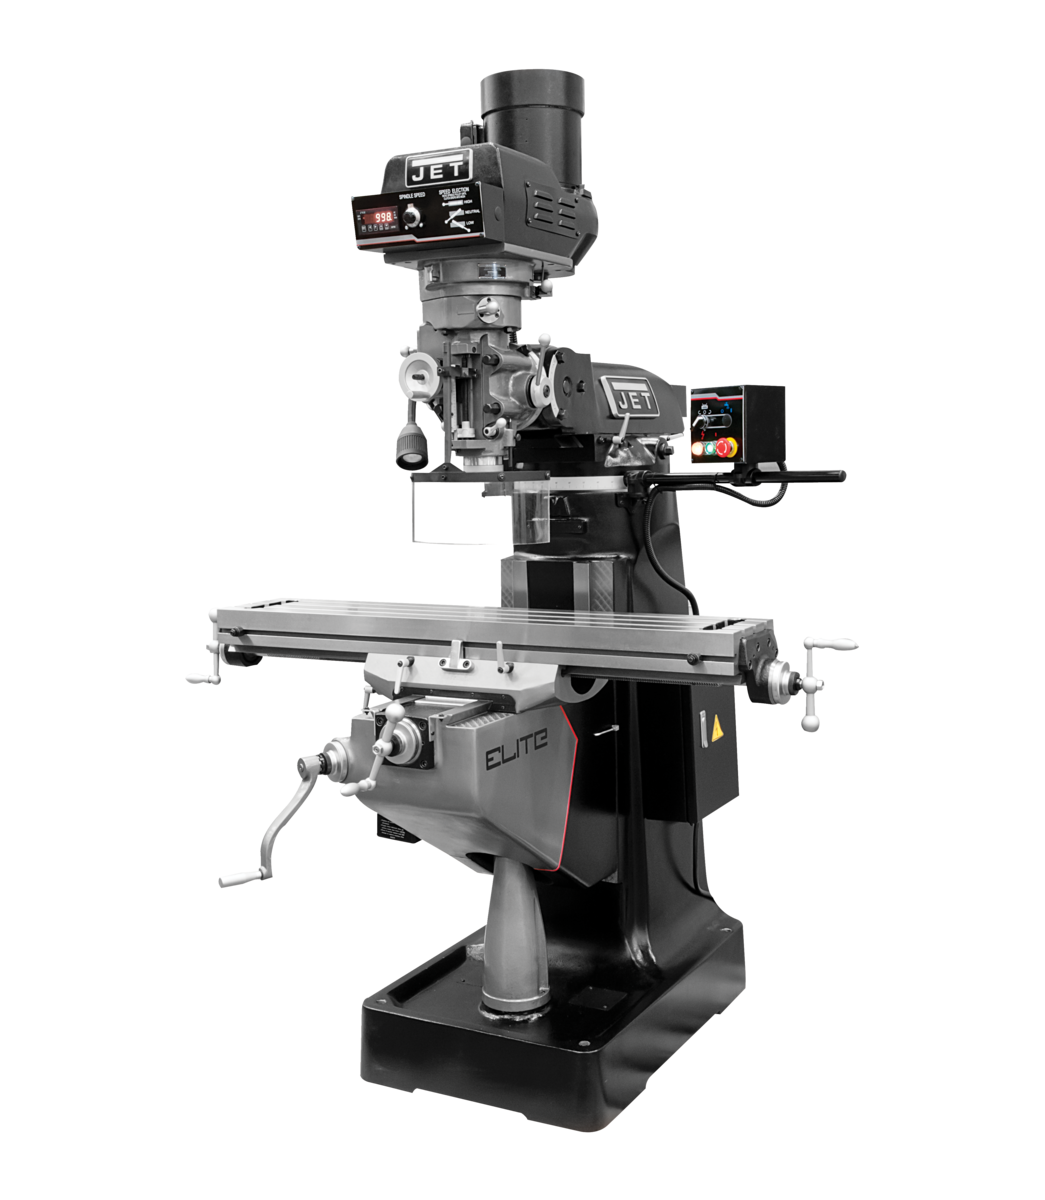 EVS-949 Mill with 3-Axis ACU-RITE 303 (Knee) DRO and Servo X-Axis Powerfeed